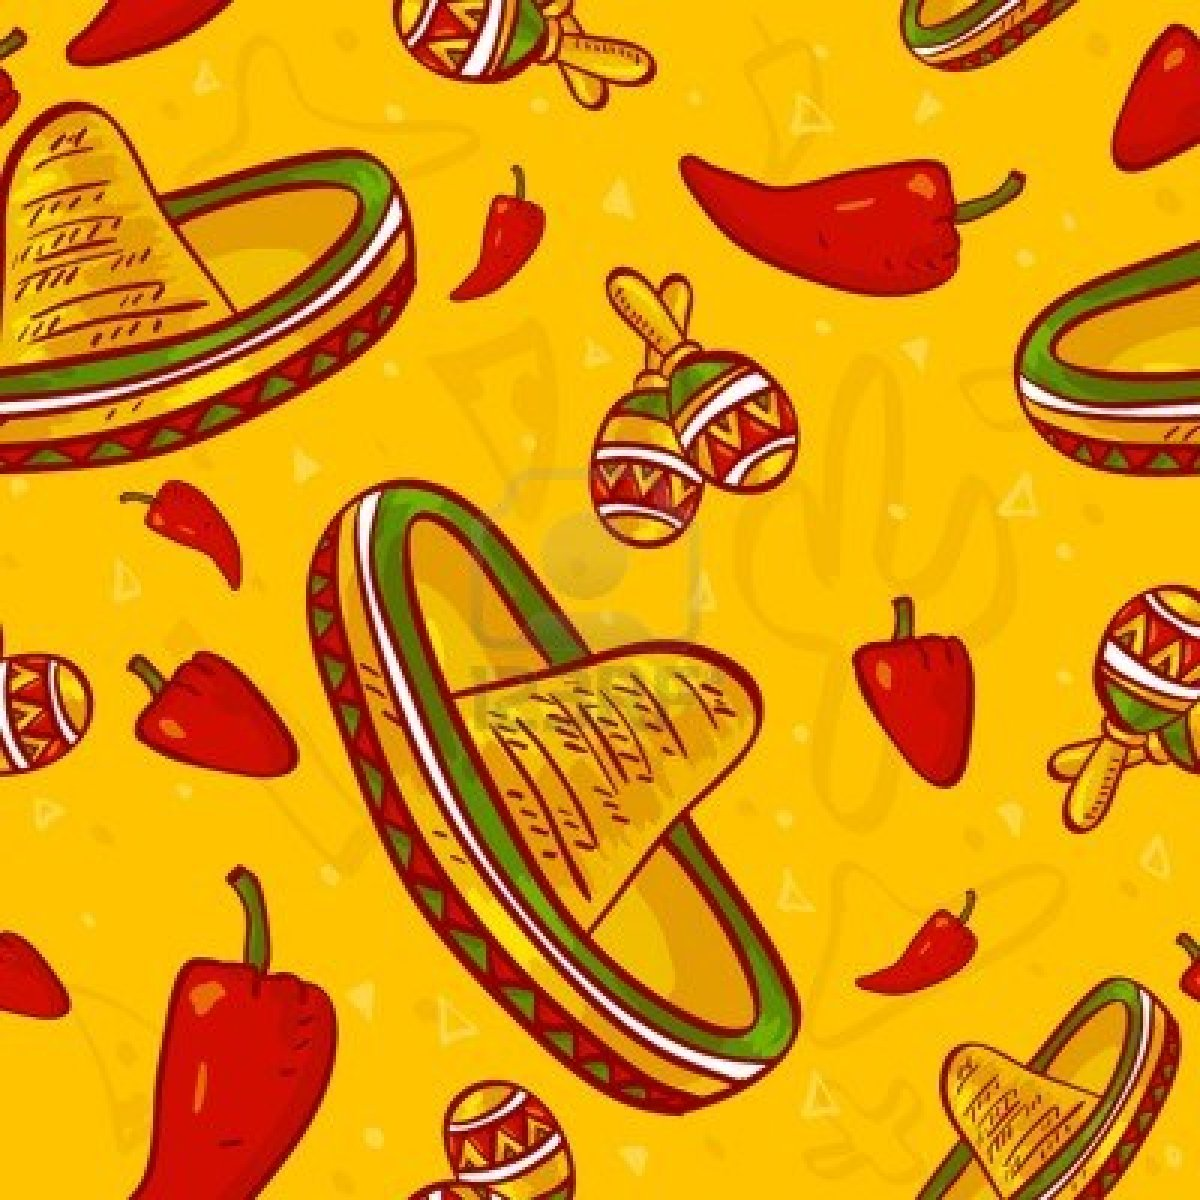 Free download Displaying 19 Images For Cinco De Mayo ...